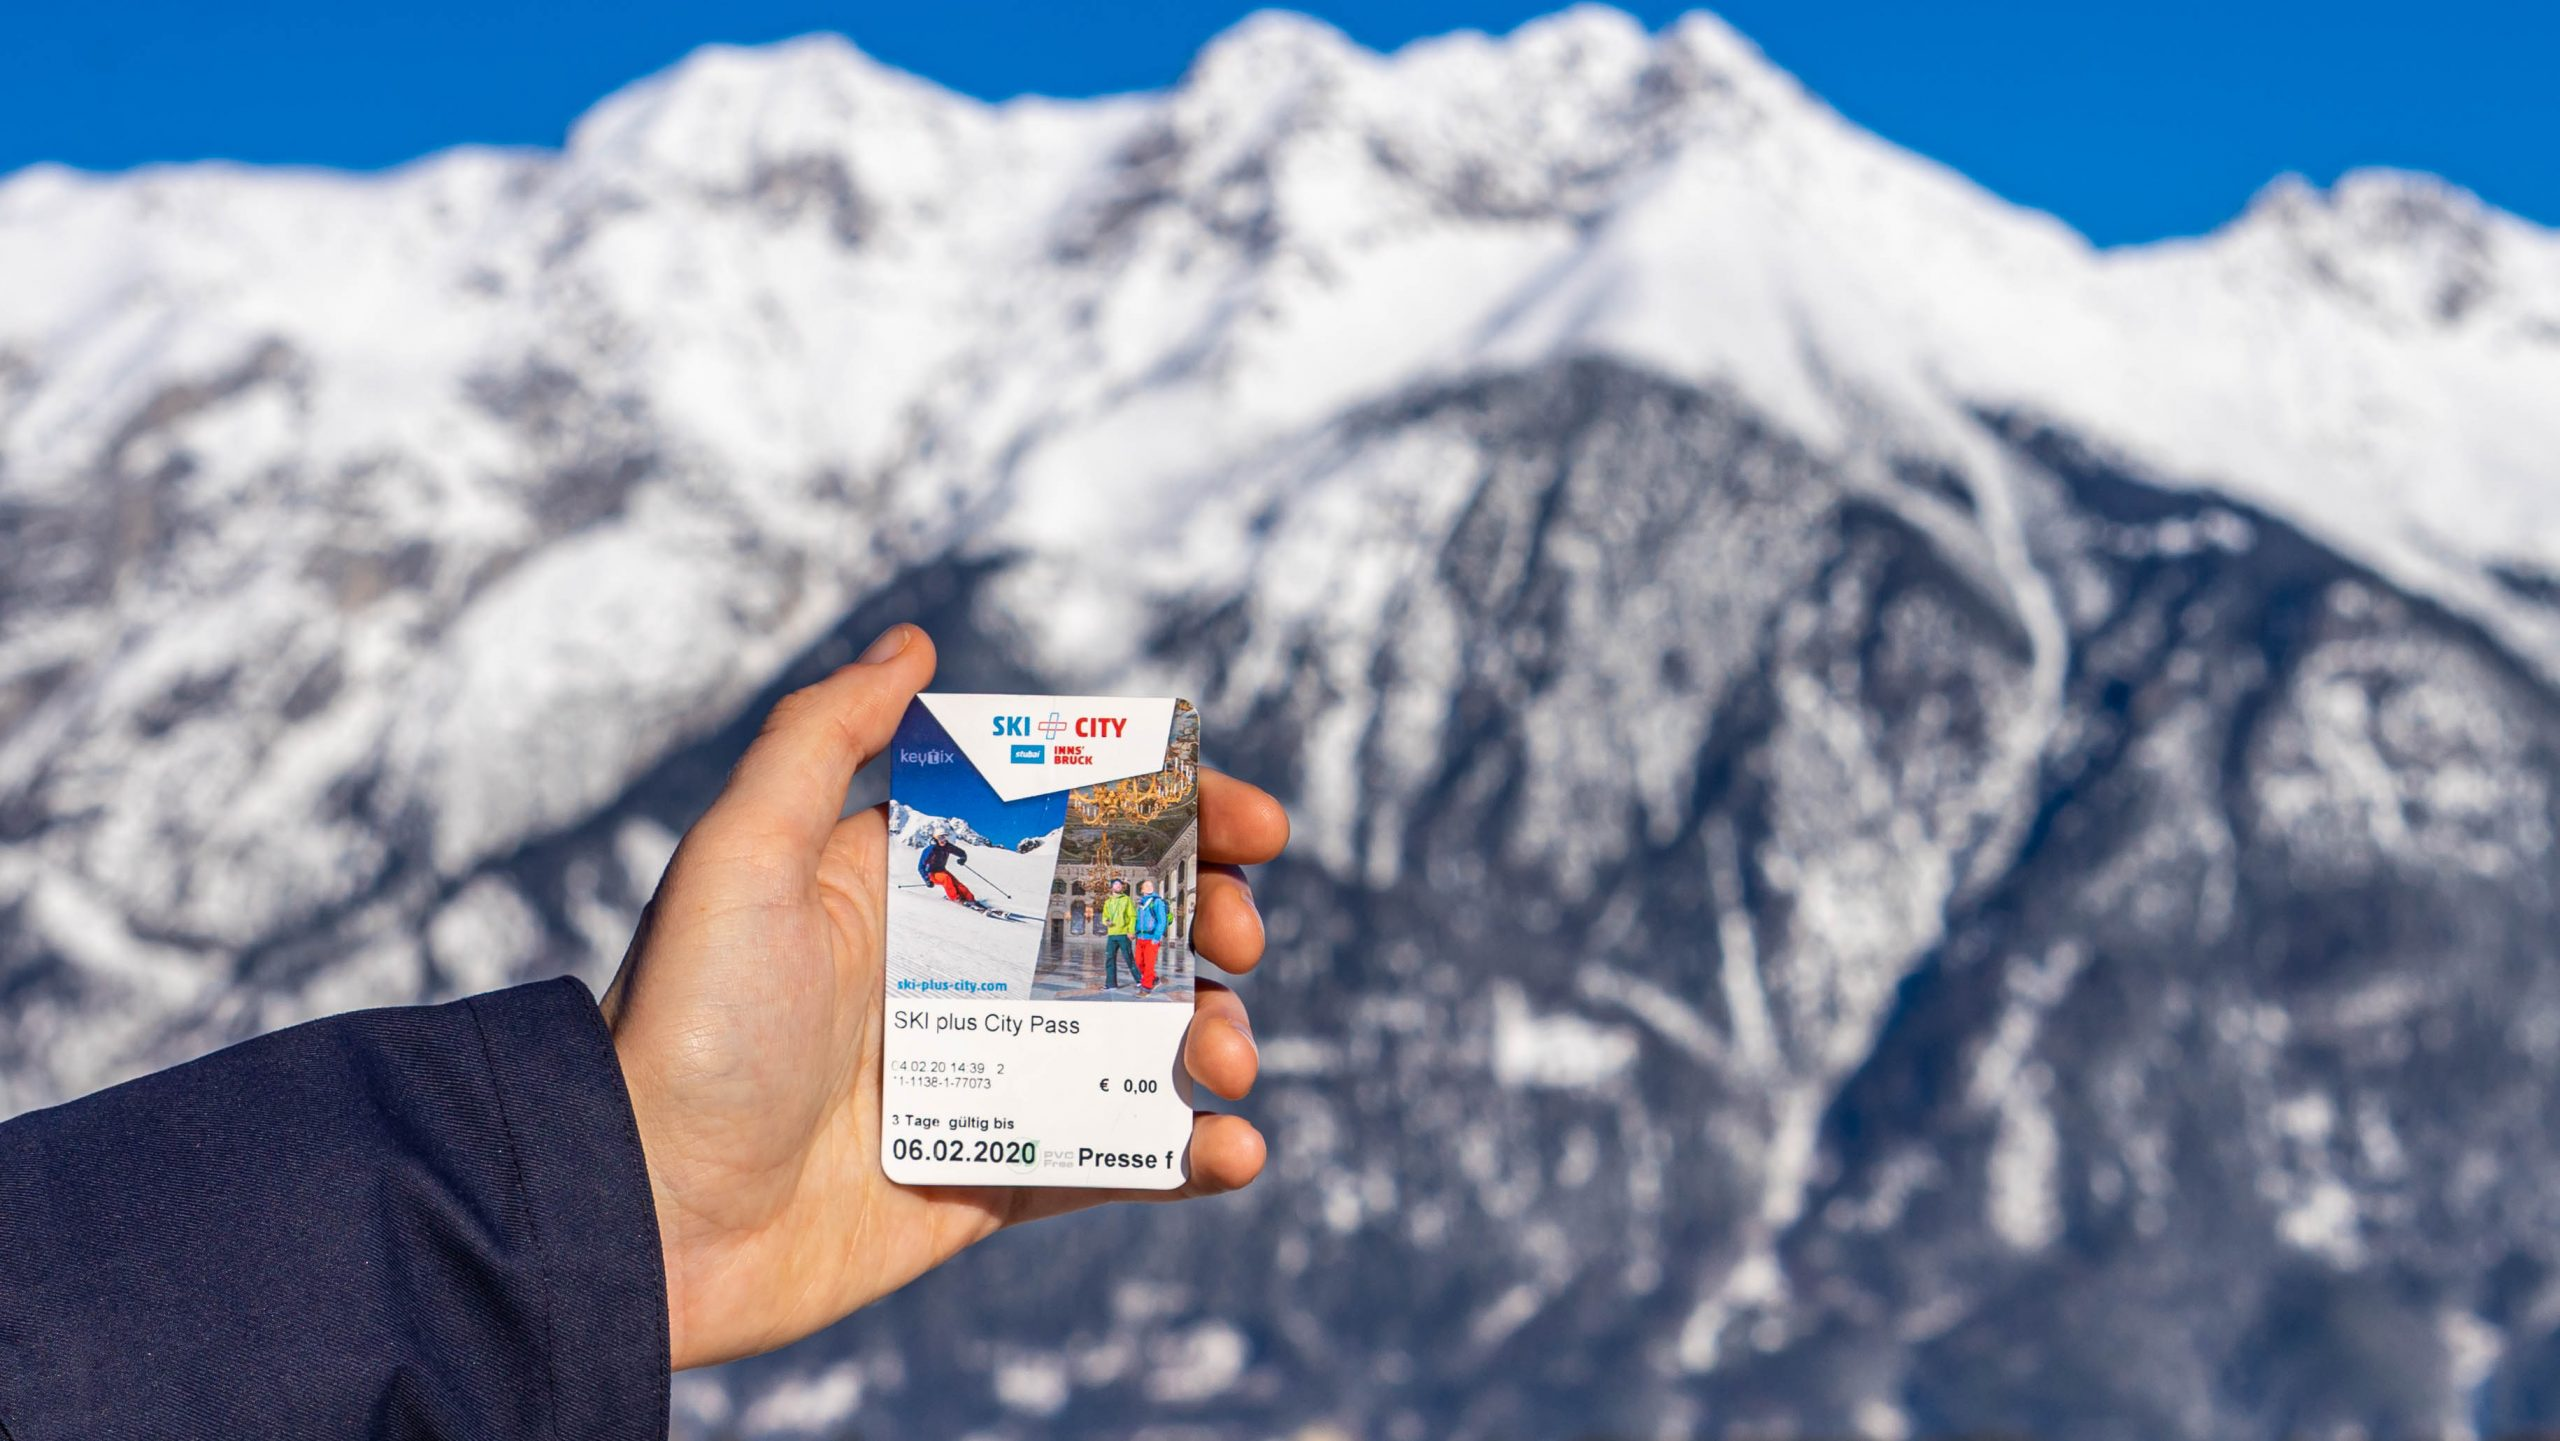 Ski-plus-city-pass-Innsbruck-in-bergen